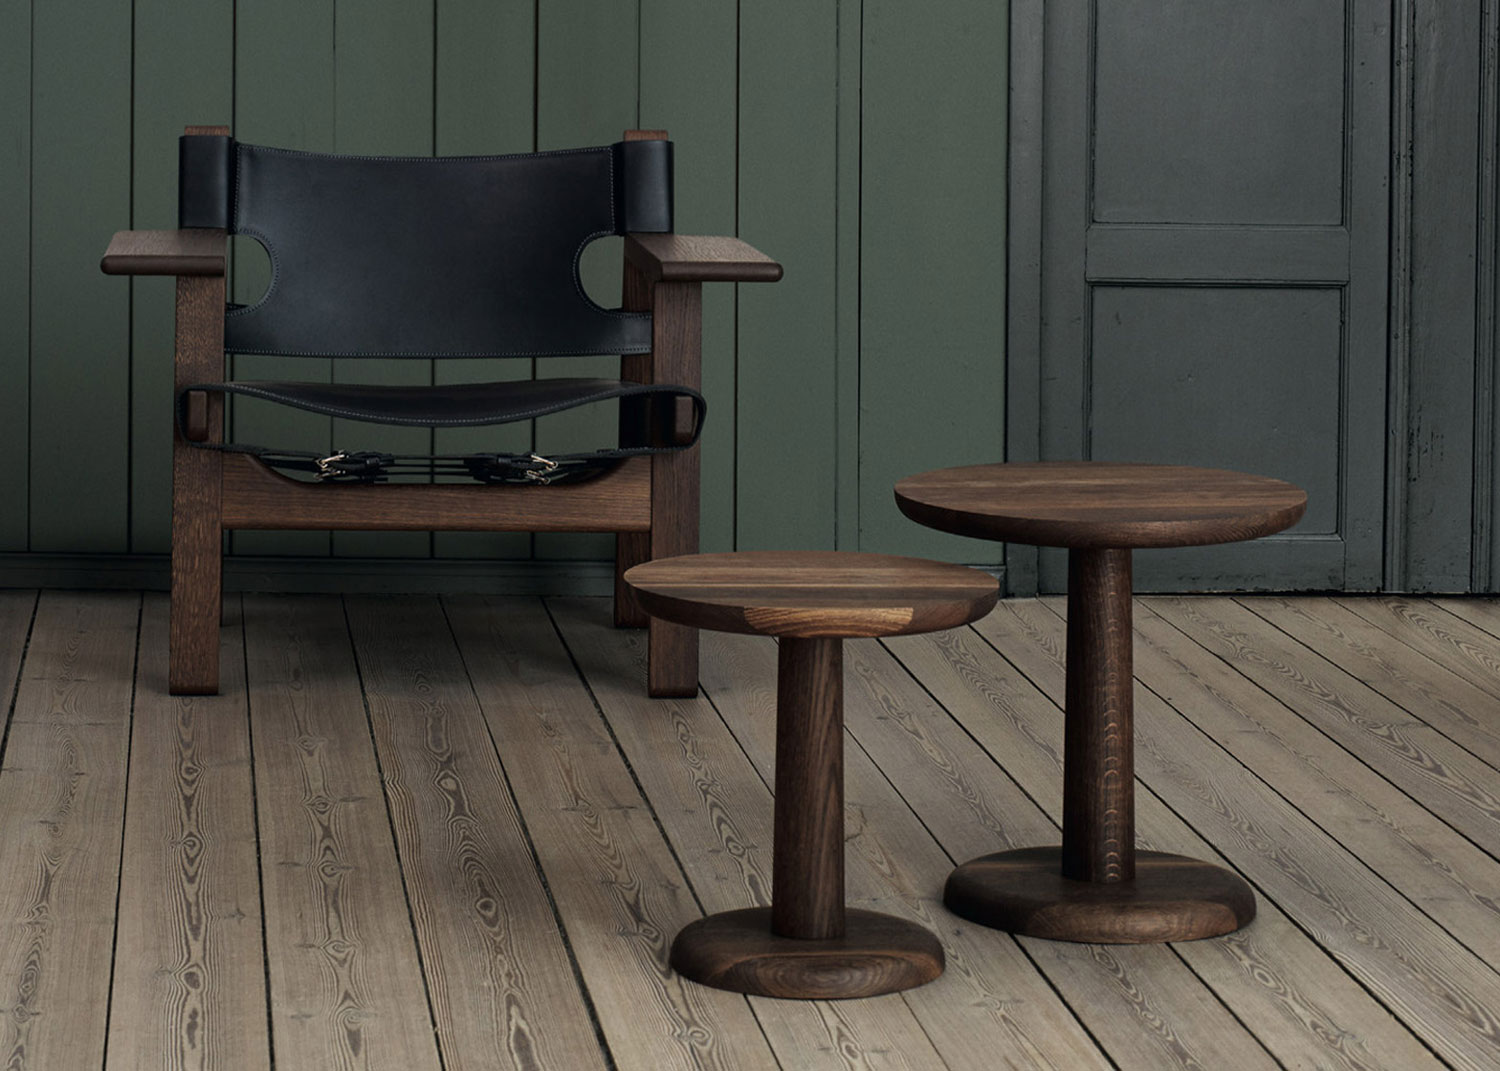 Jasper Morrison for Fredericia | Yellowtrace